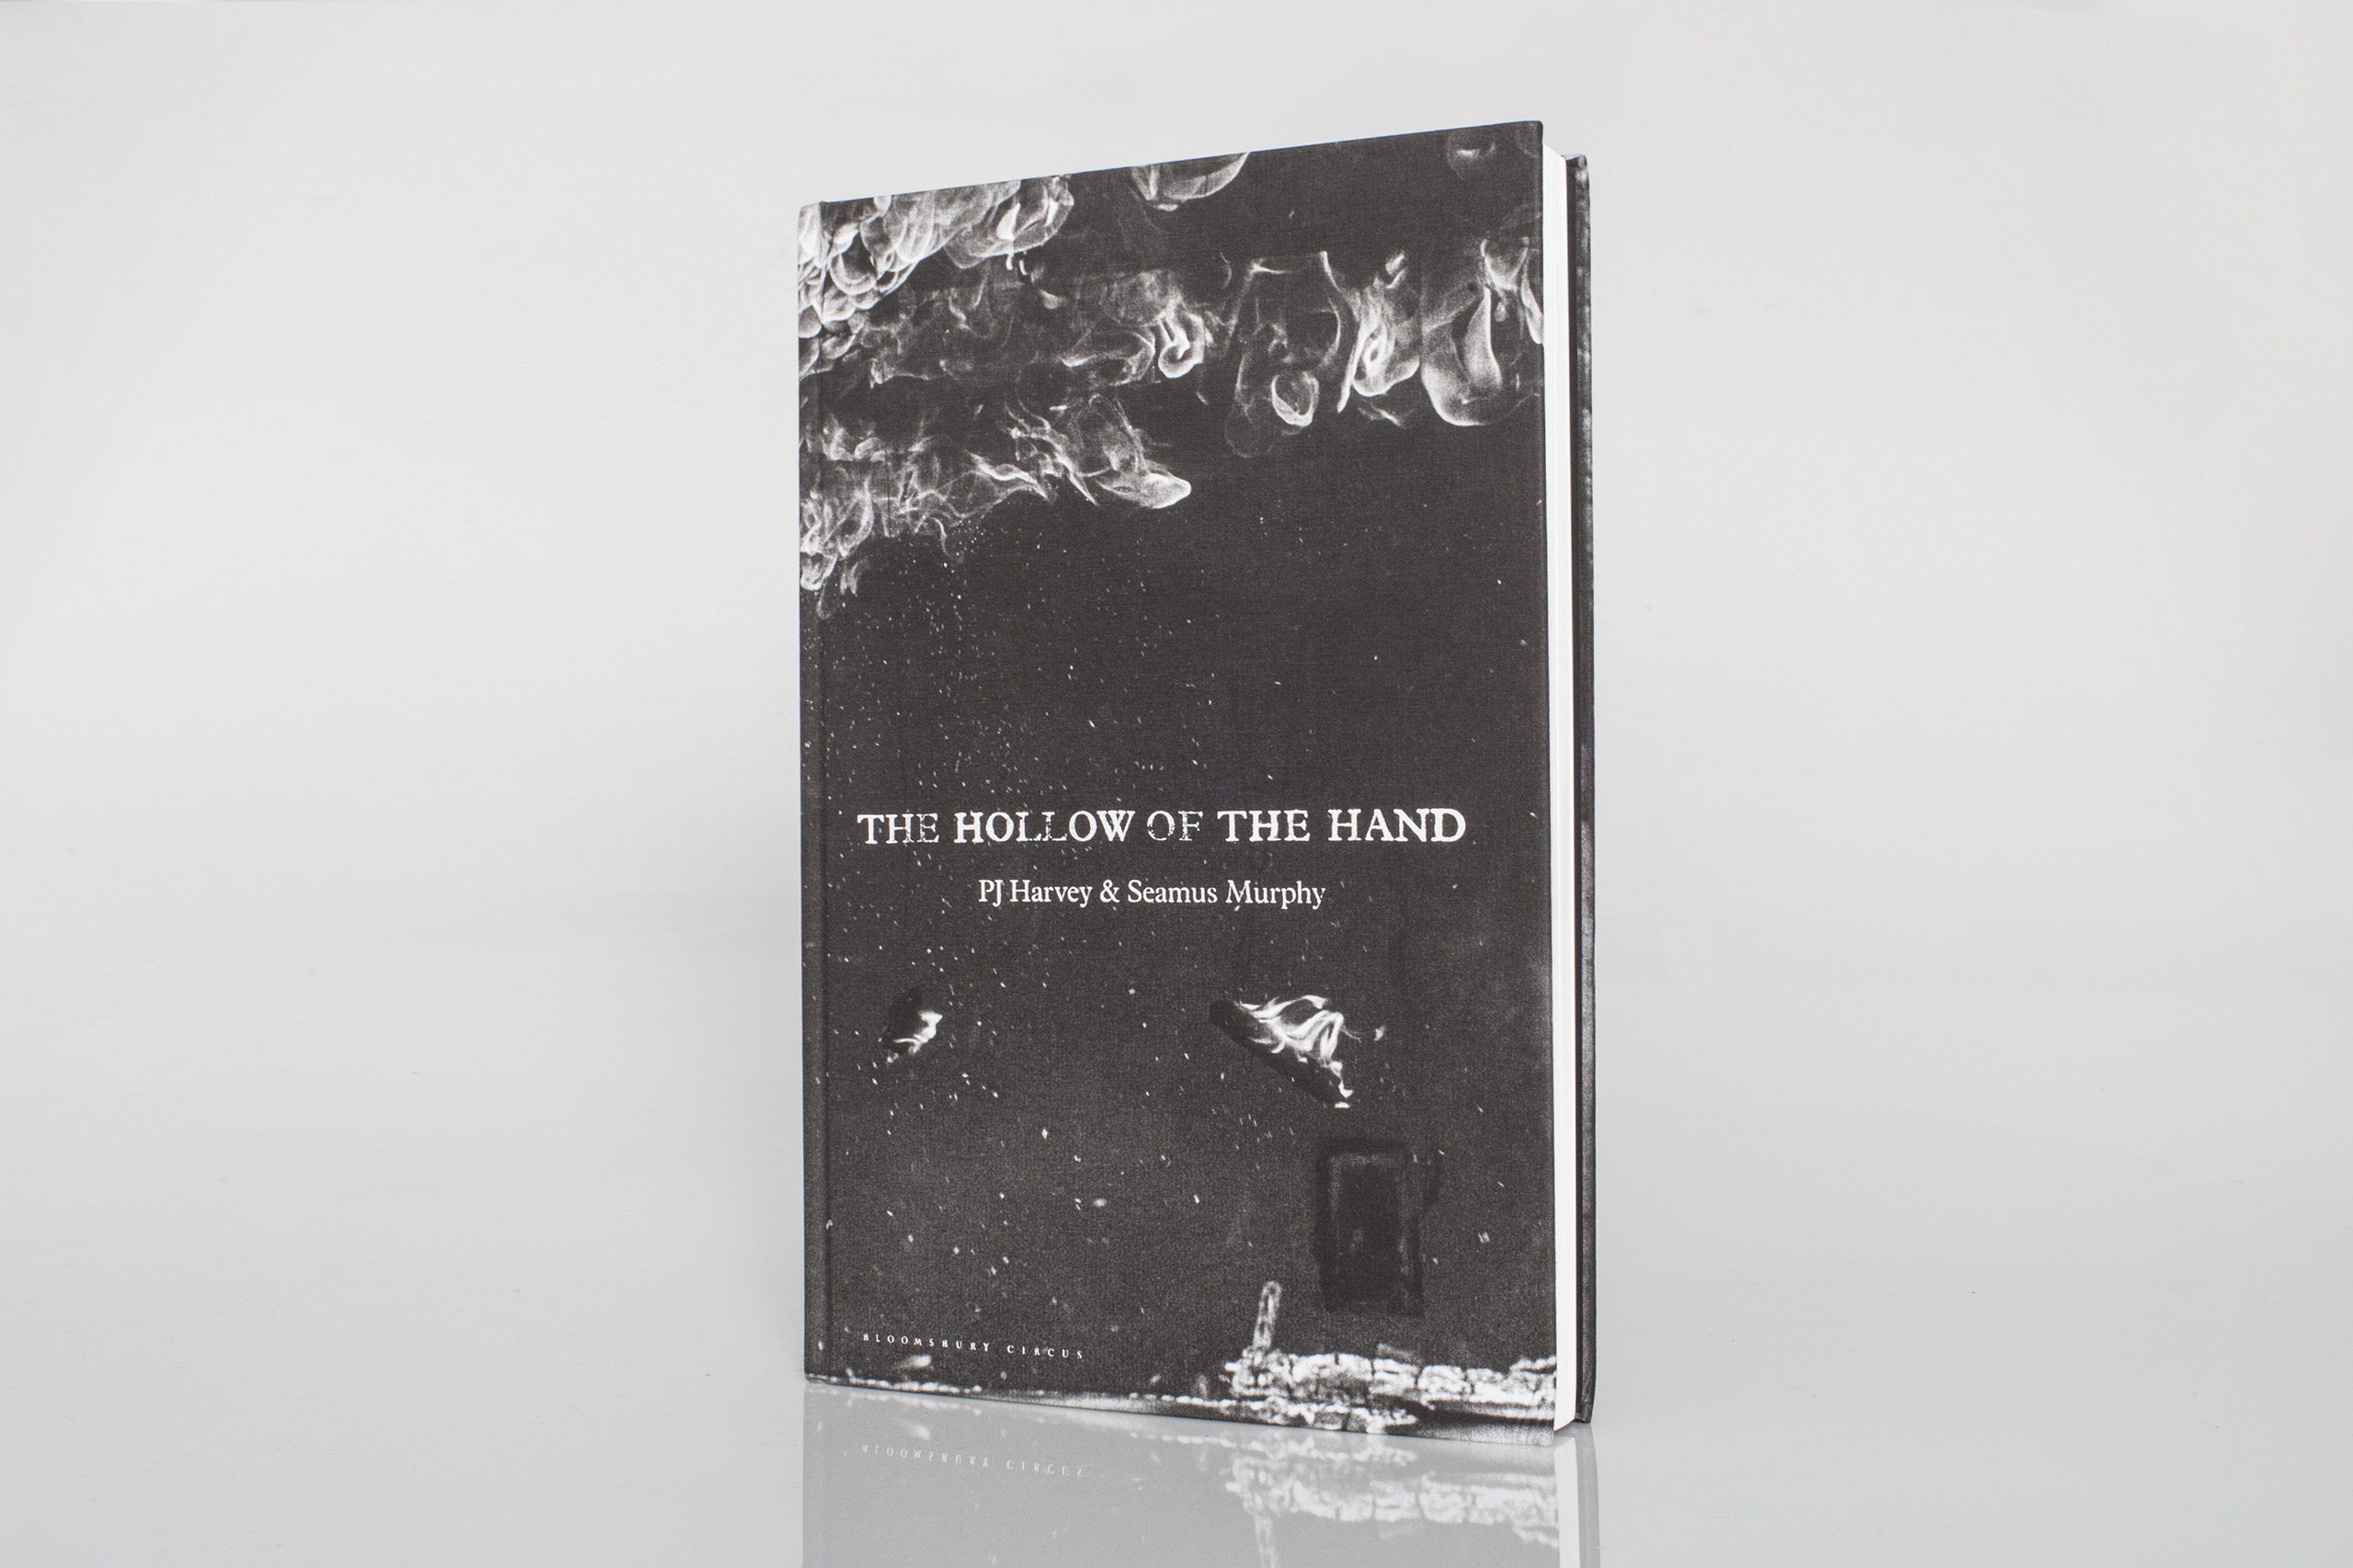 The Hollow of the Hand  by PJ Harvey / Seamus MurphyPublished by Bloomsbury